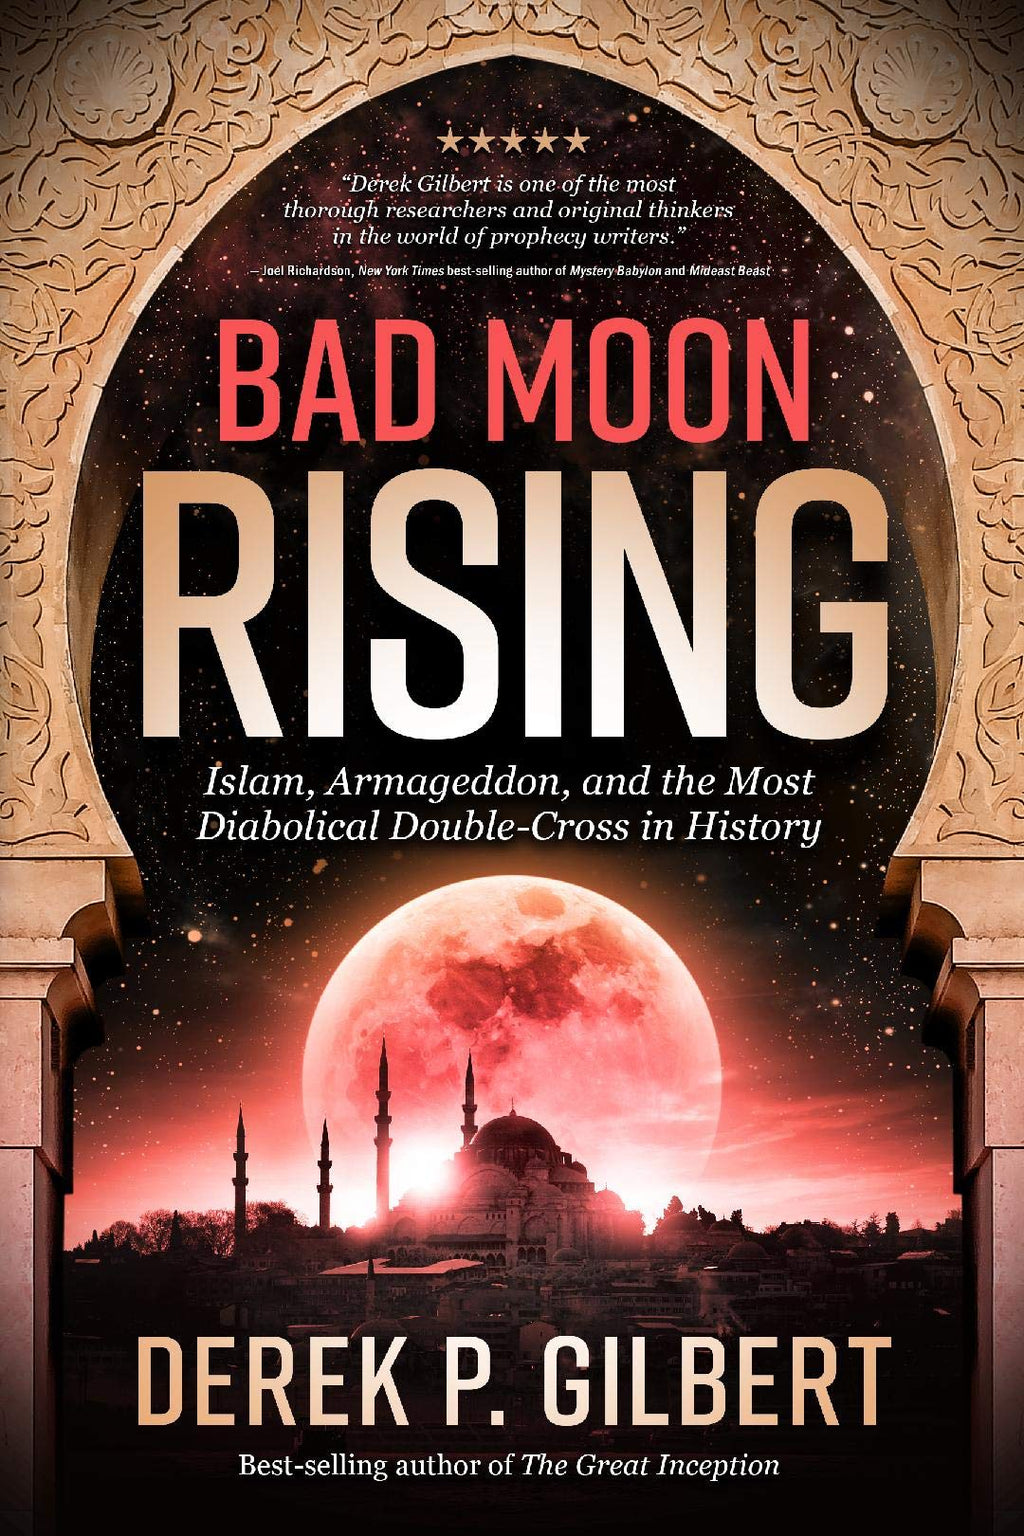 Bad Moon Rising: Islam, Armageddon, and the Most Diabolical Double-Cross in History